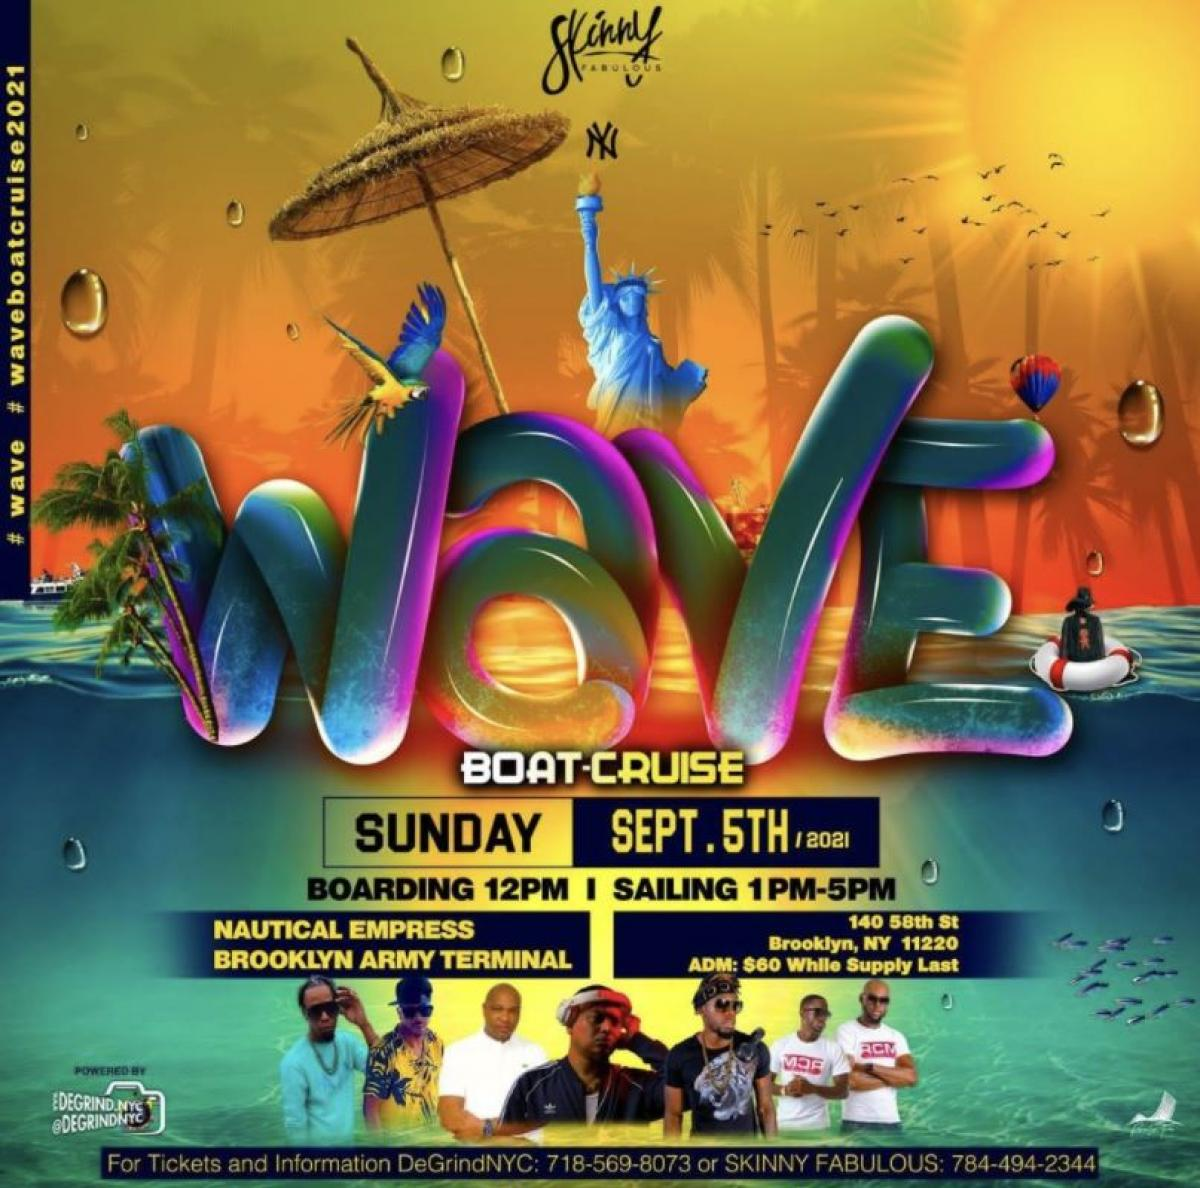 Wave Boat Cruise 2021 flyer or graphic.